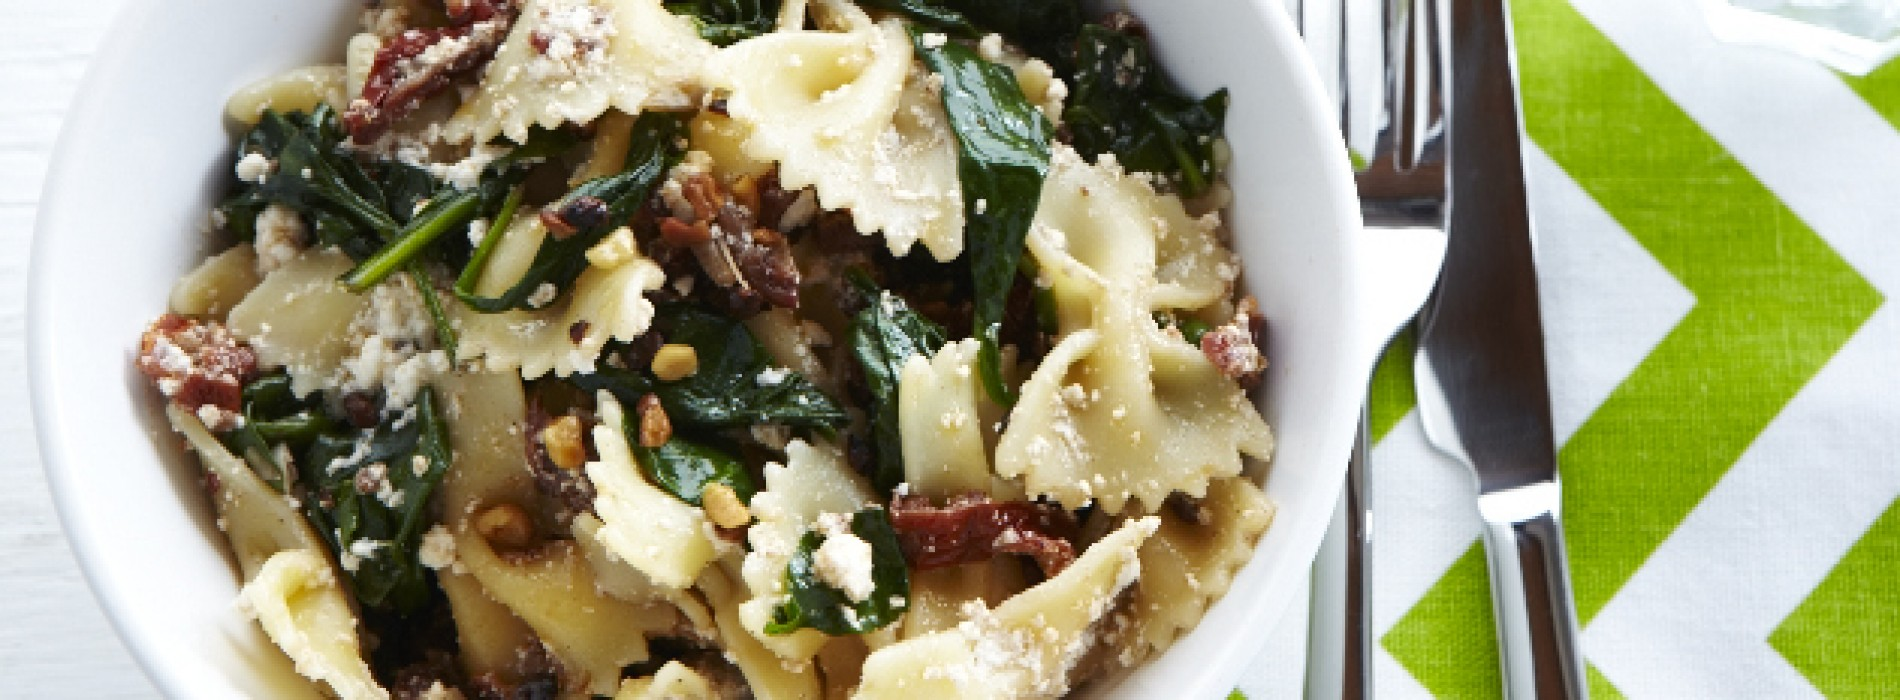 Sundried Tomato and Spinach Farfalle with Walnuts